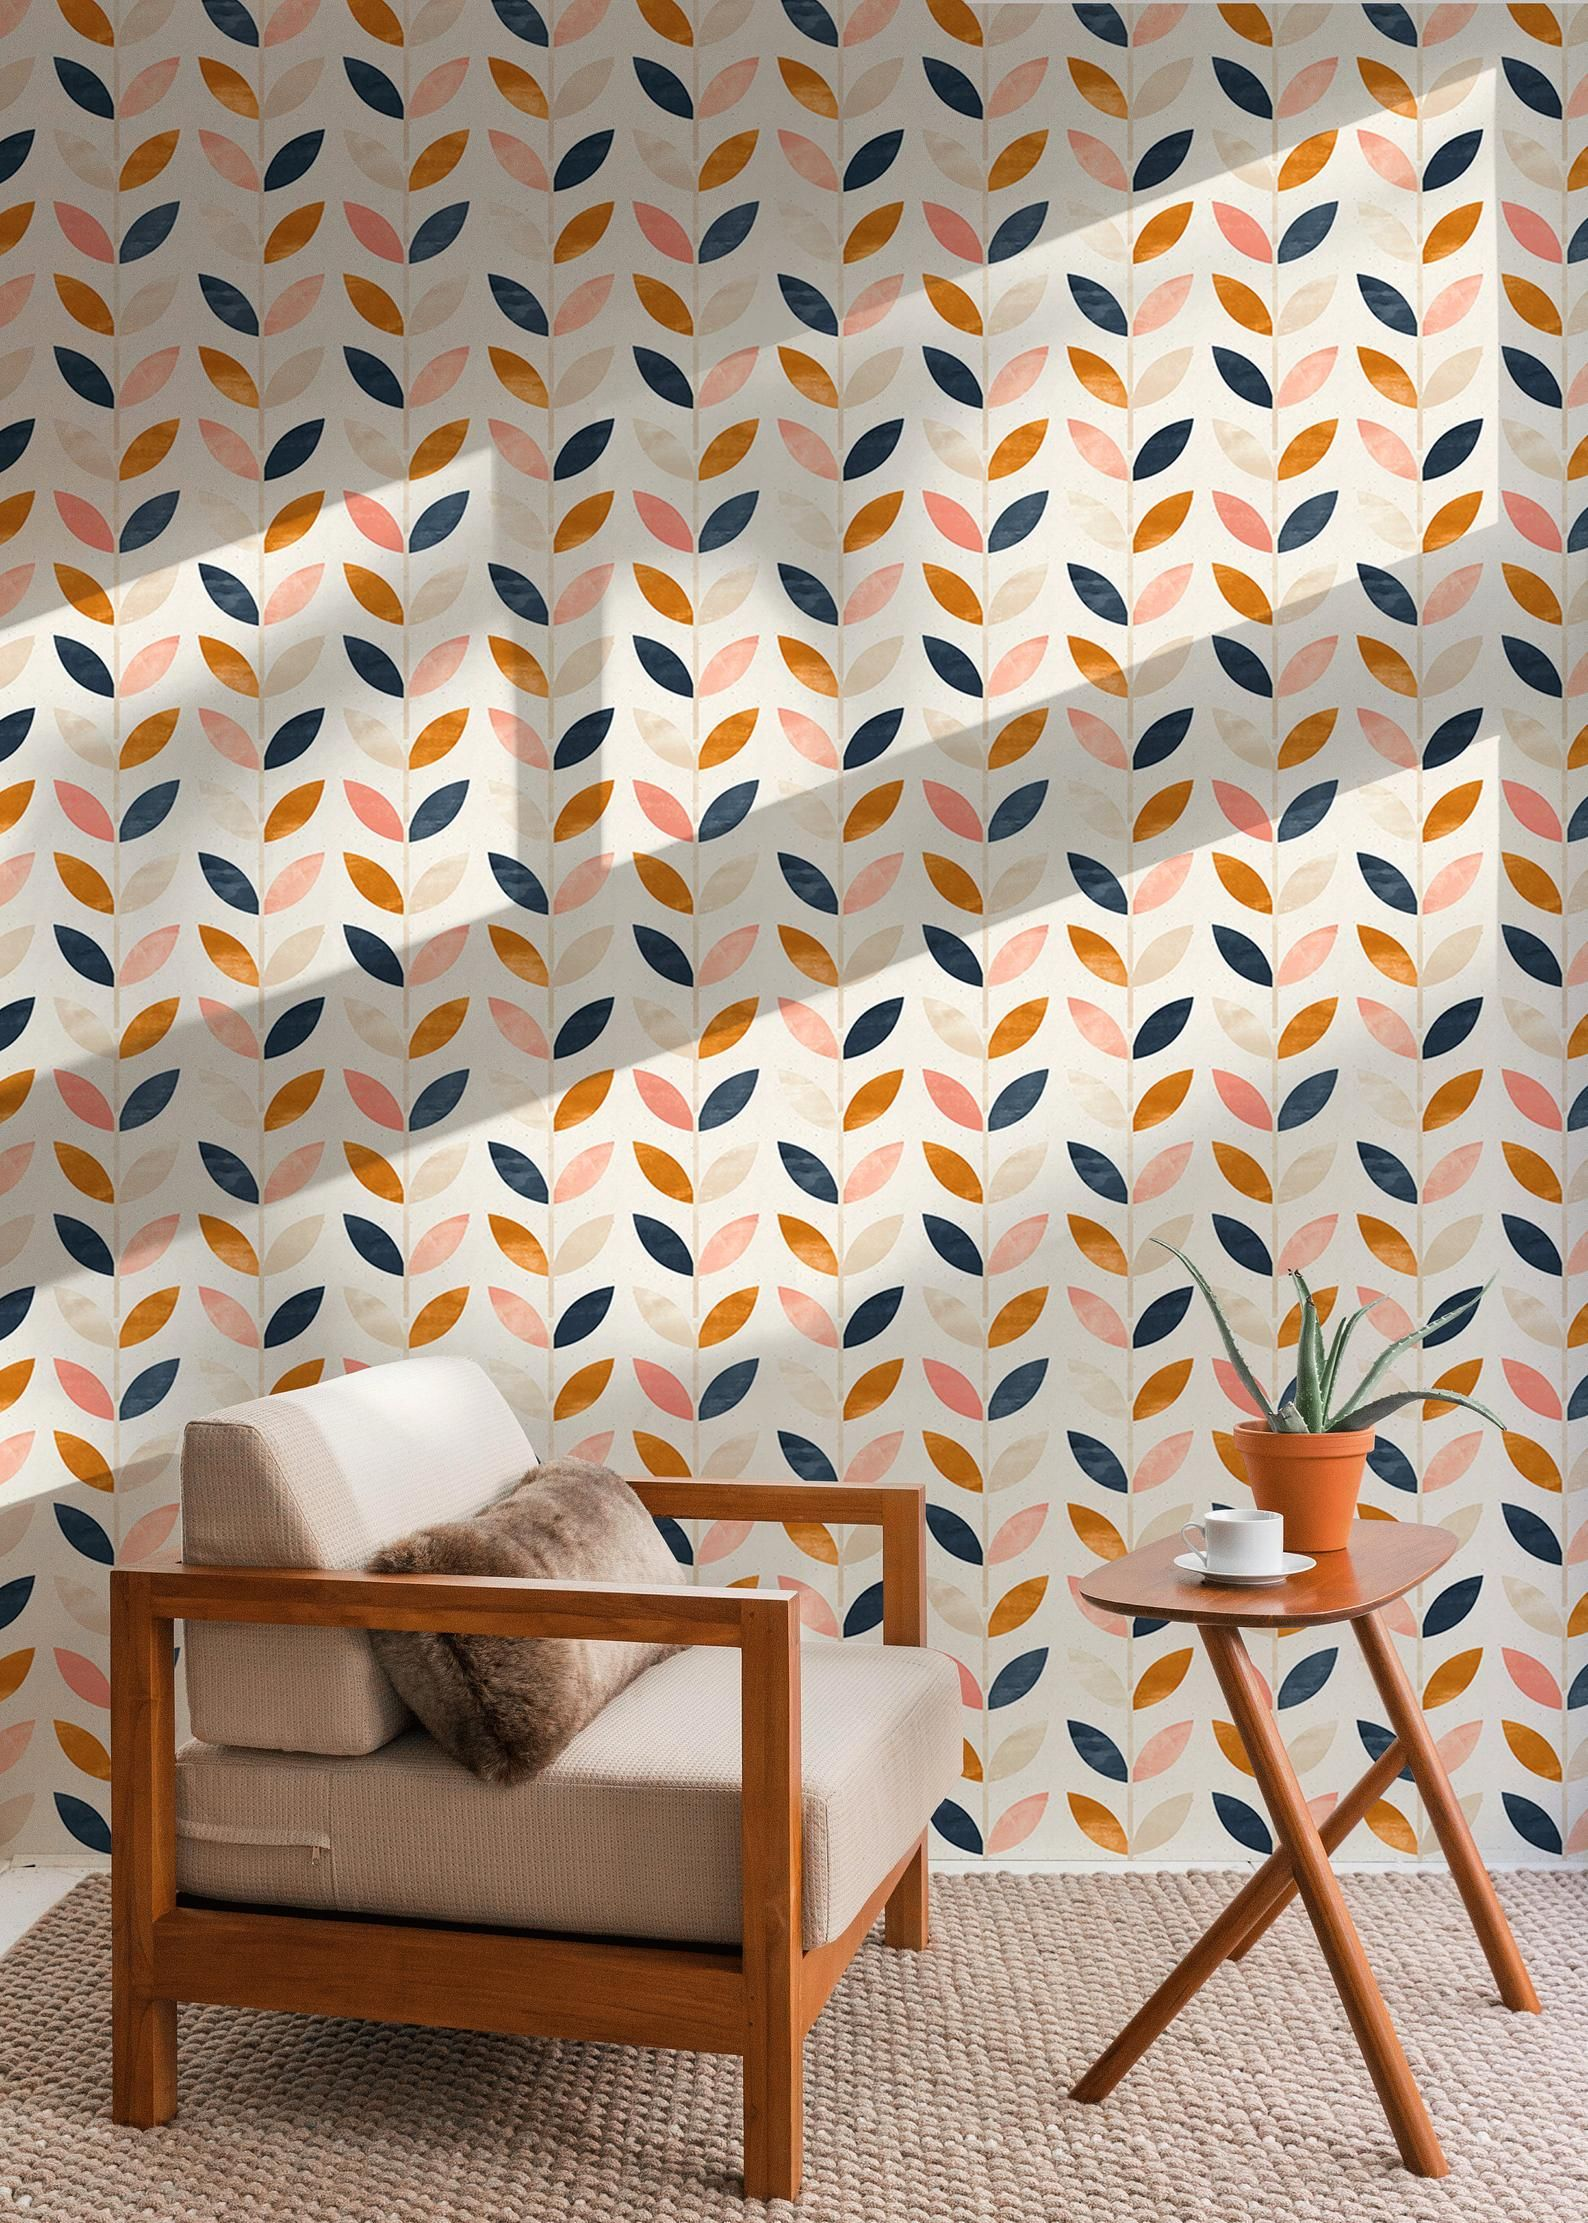 Removable Wallpaper Peel And Stick Wallpaper Wall Paper Wall Mural A096 Removable Wallpaper Wall Wallpaper Wallpaper Walls Decor